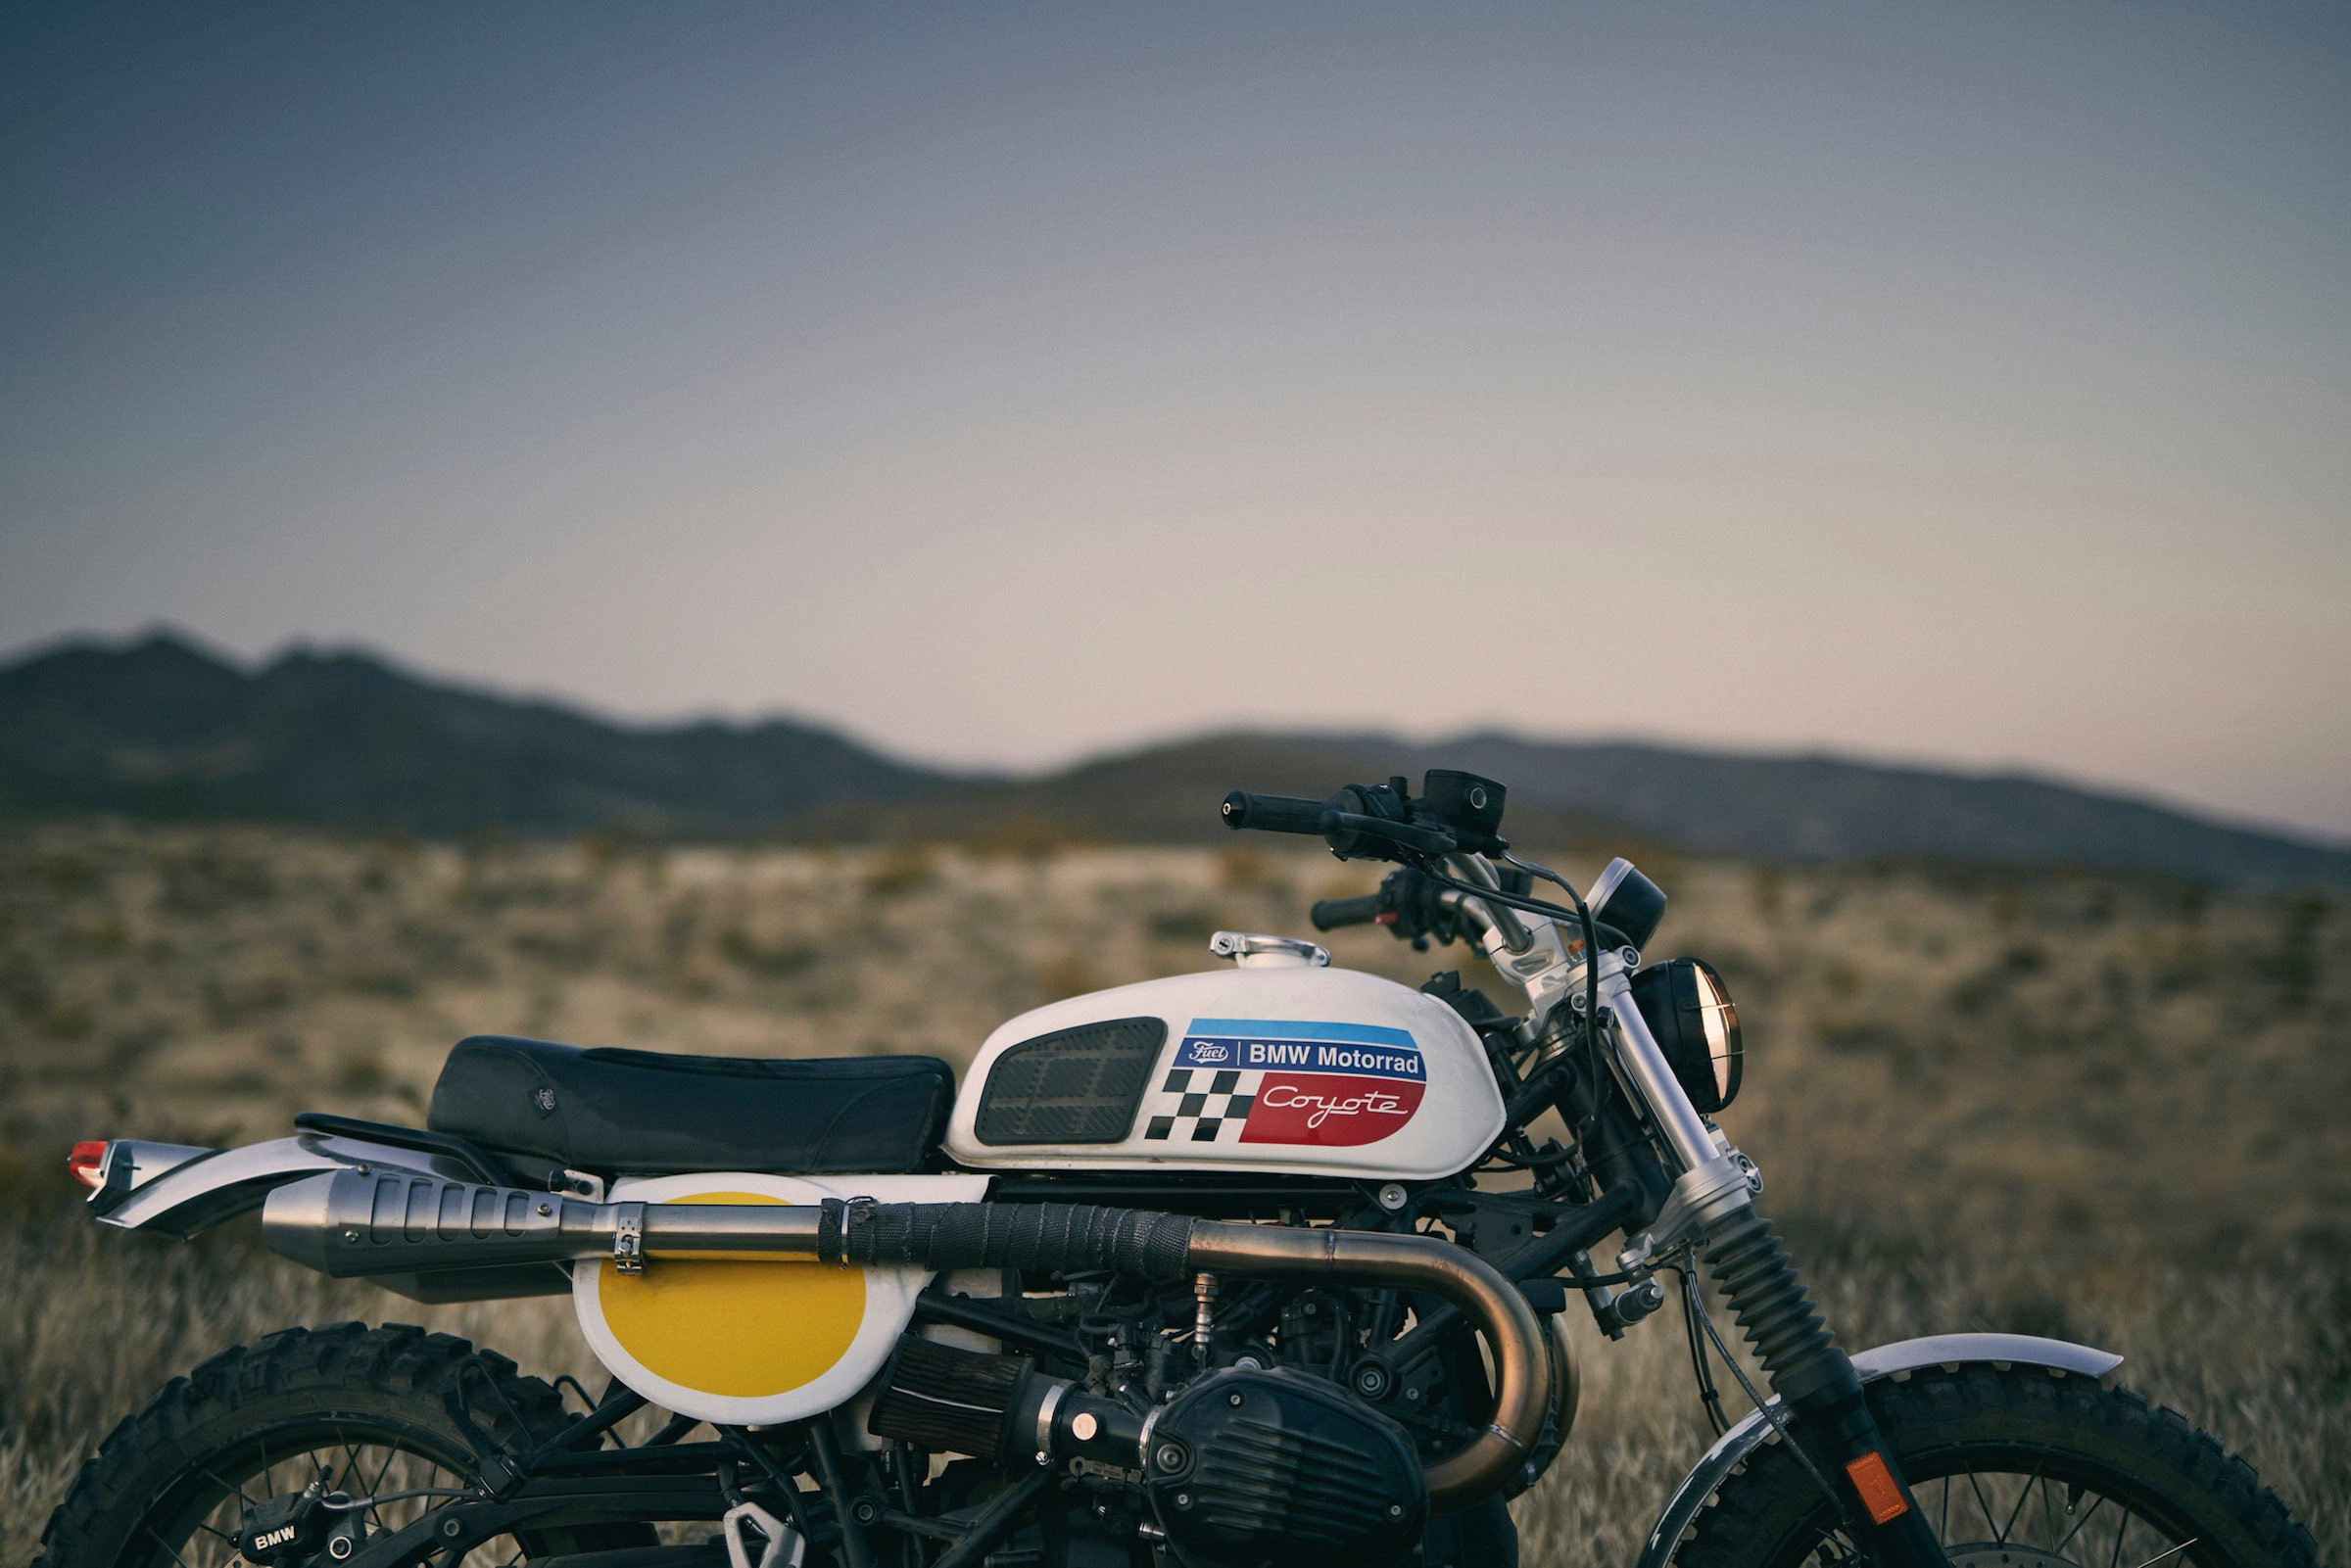 The Fuel Motorcycles Coyote BMW R NineT Urban GS